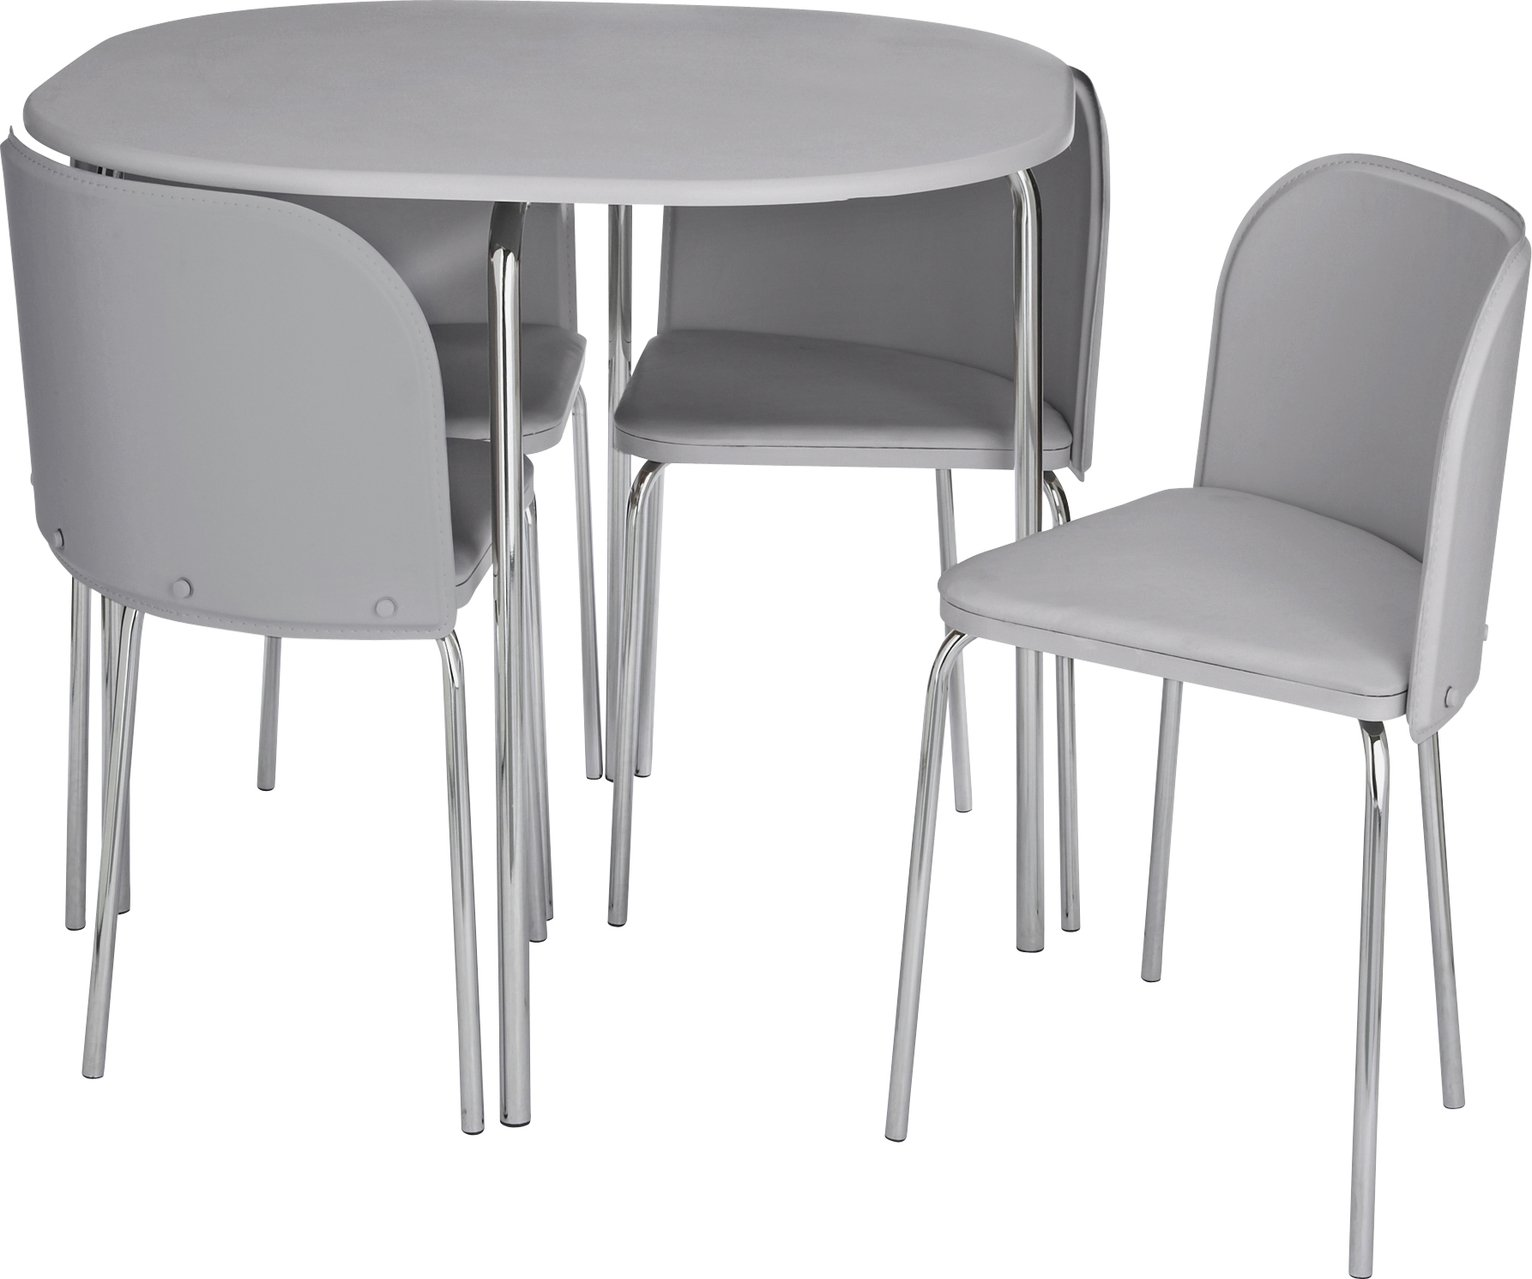 Space Saving Table And Chairs Argos Home Amparo Space Saving Dining Table And 4 Chairs